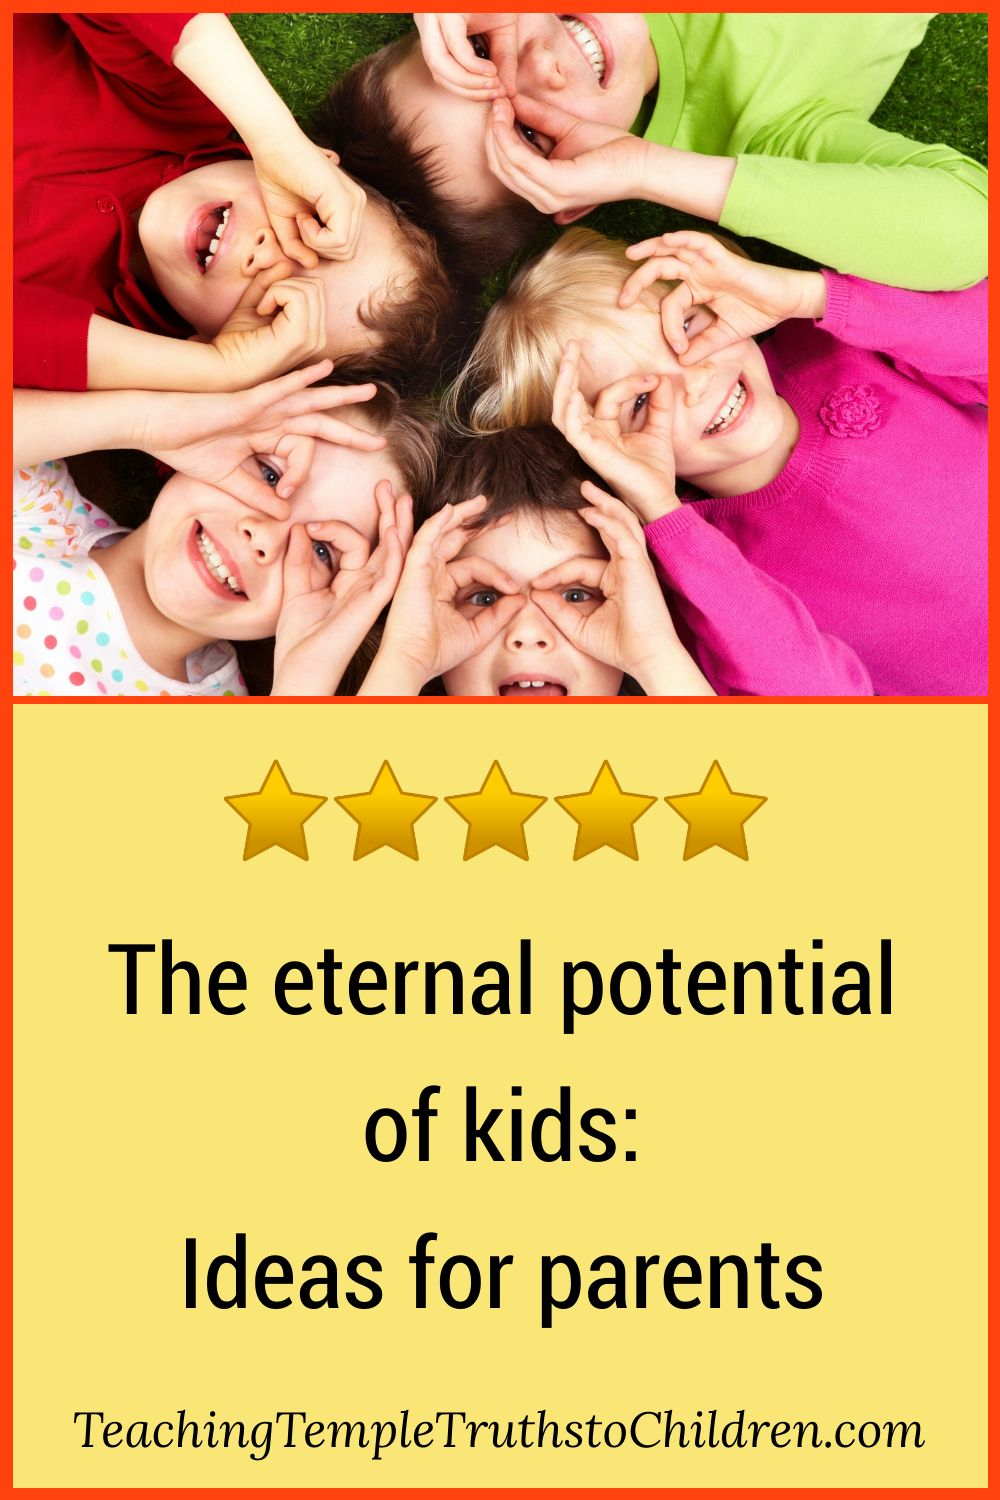 The eternal potential of kids: ideas for parents